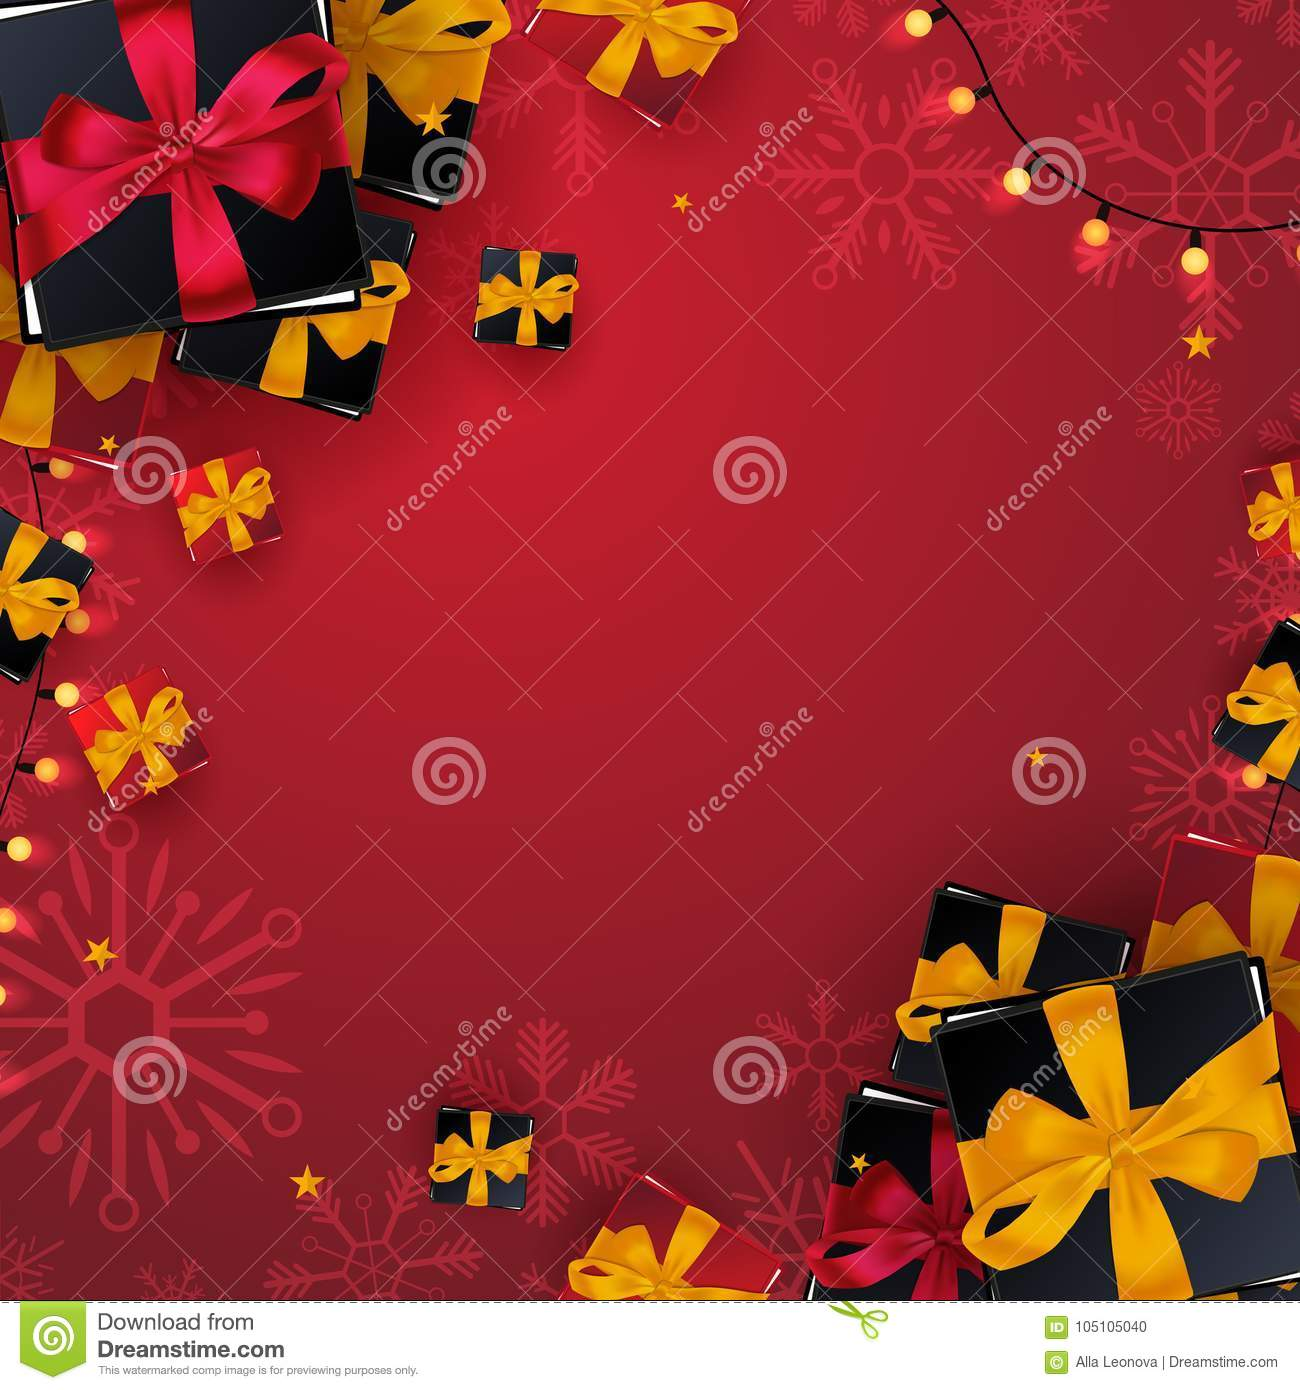 download marry christmas and happy new year banner on red background with snowflakes and gift boxes